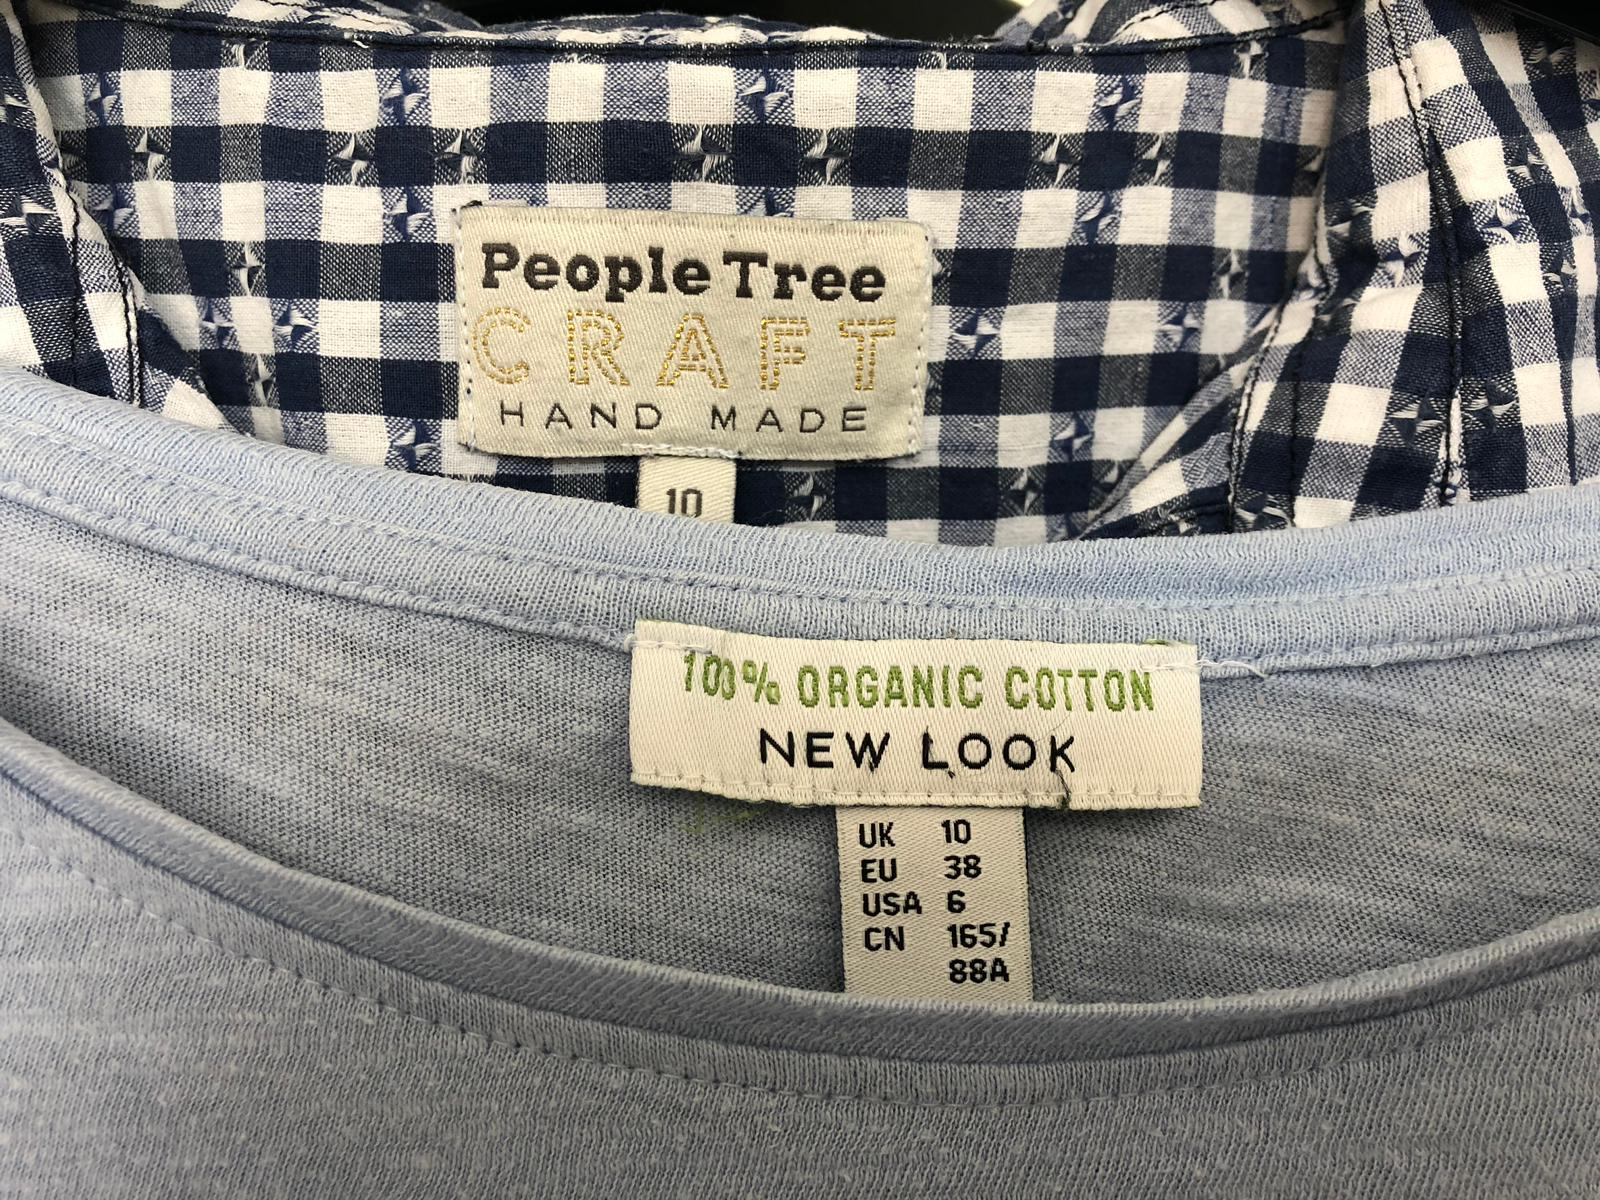 A picture showing a few items of clothing from People Tree and New Look